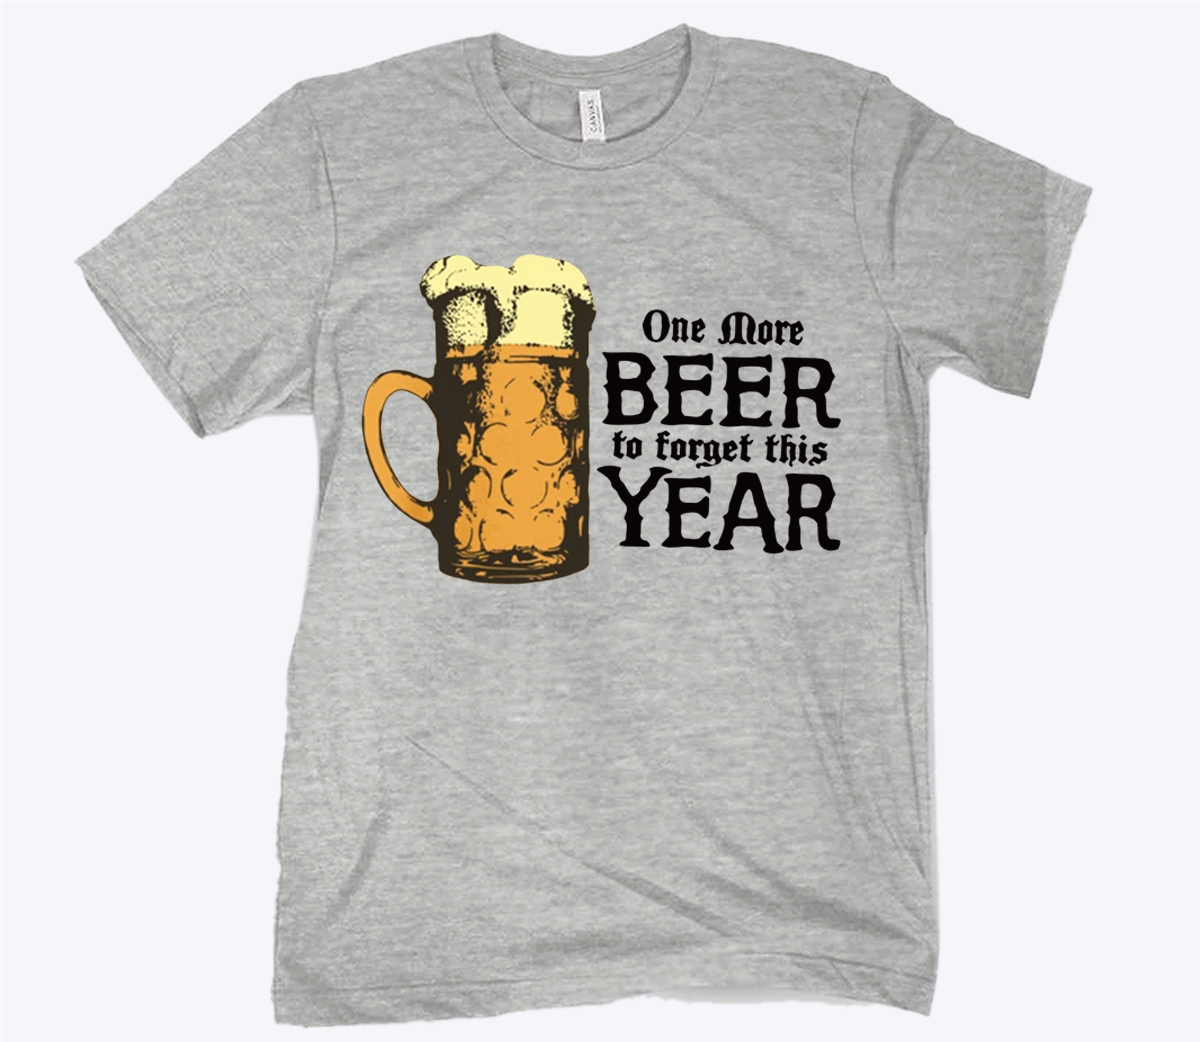 One More Beer To Torget Year T-Shirt